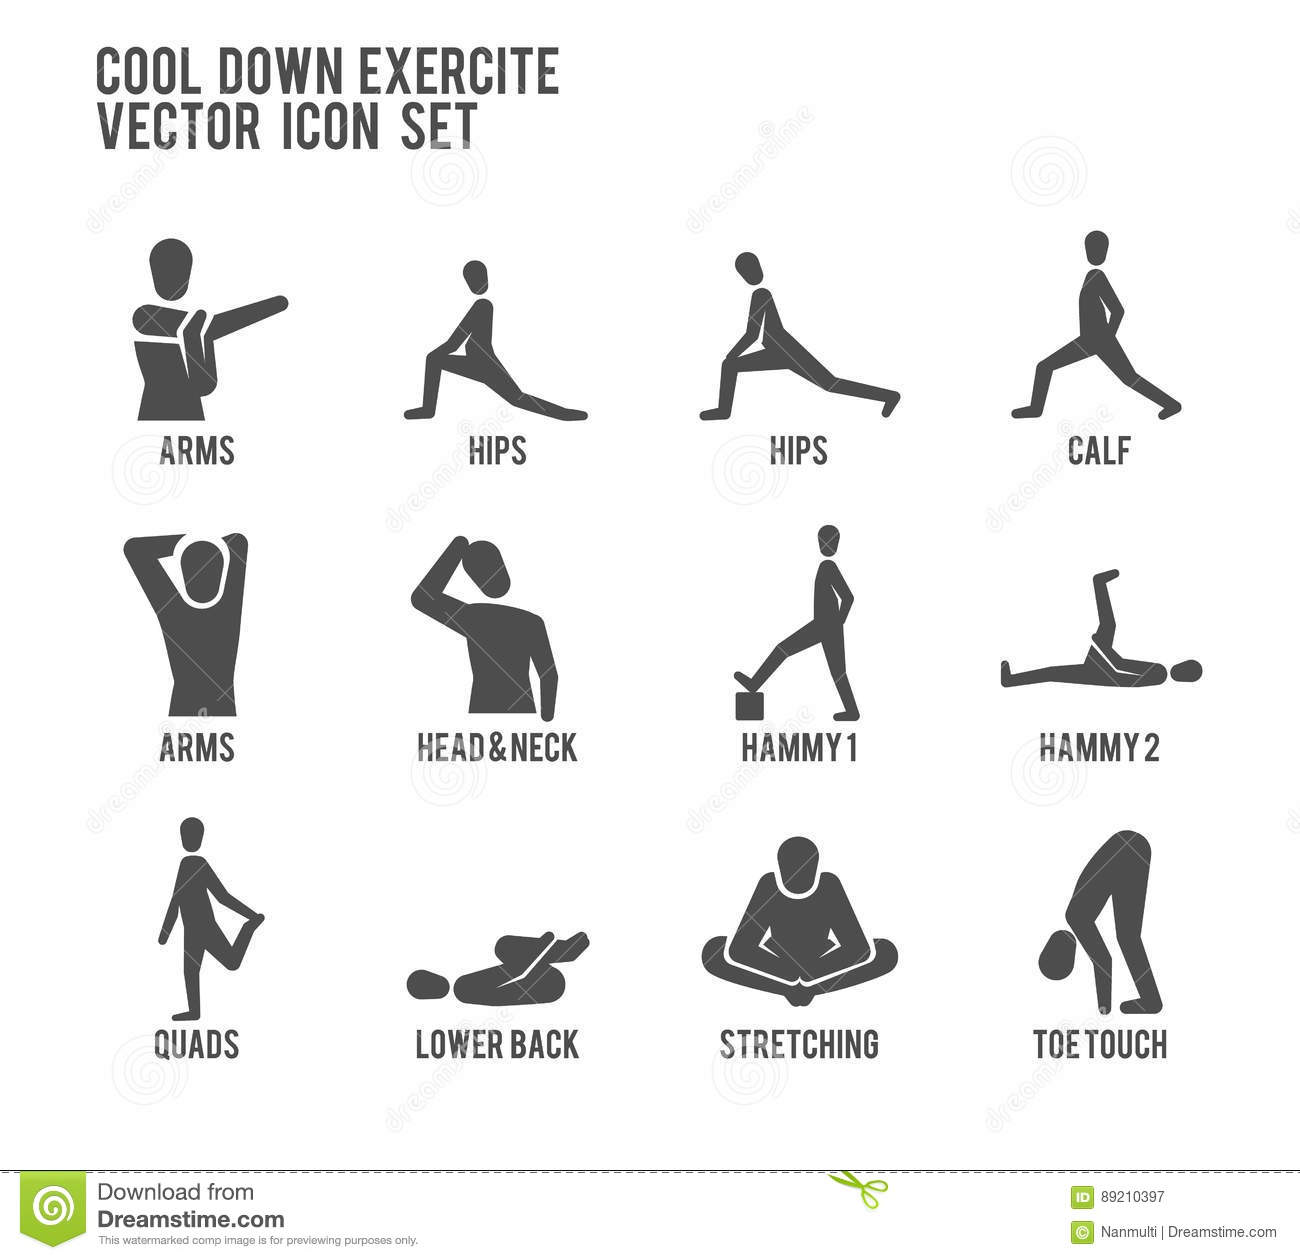 Cool Down Warm Up Exercise Stretching Workout Vector Icon